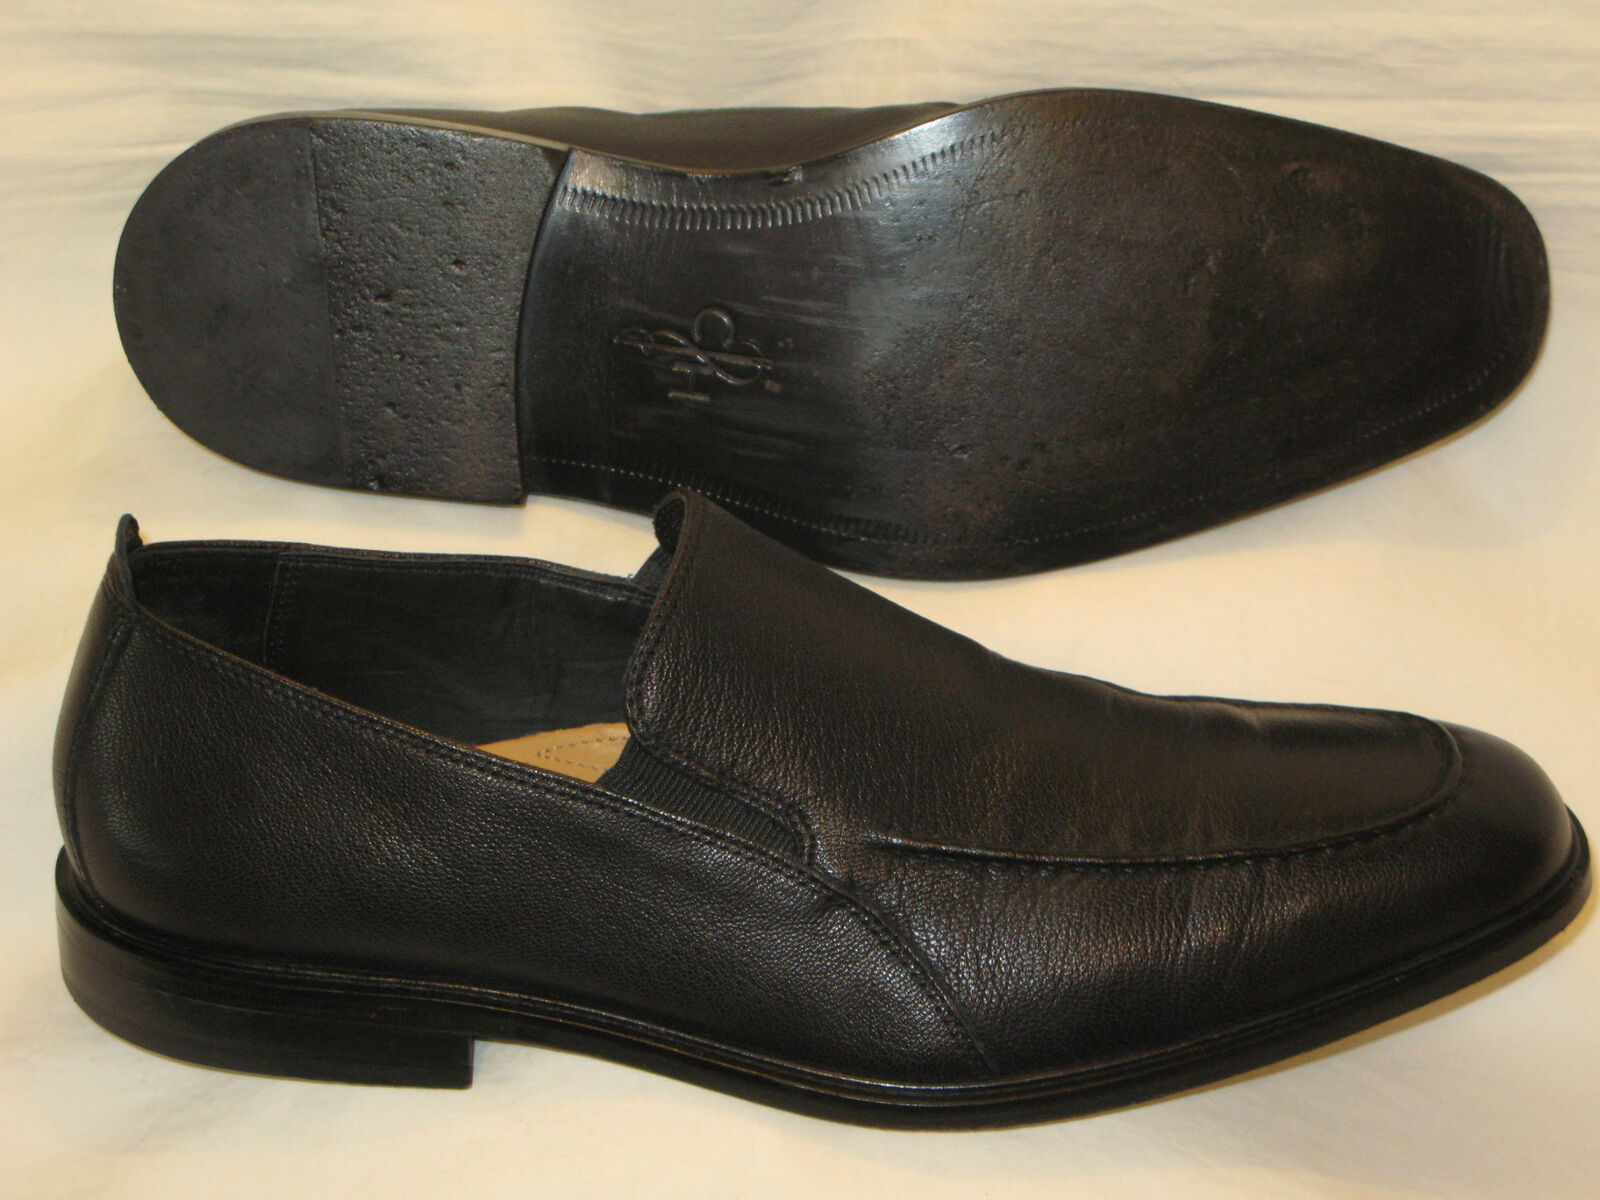 Cole Haan Venetian Loafers USA Mens Sz 12 M Black Leather Dress shoes